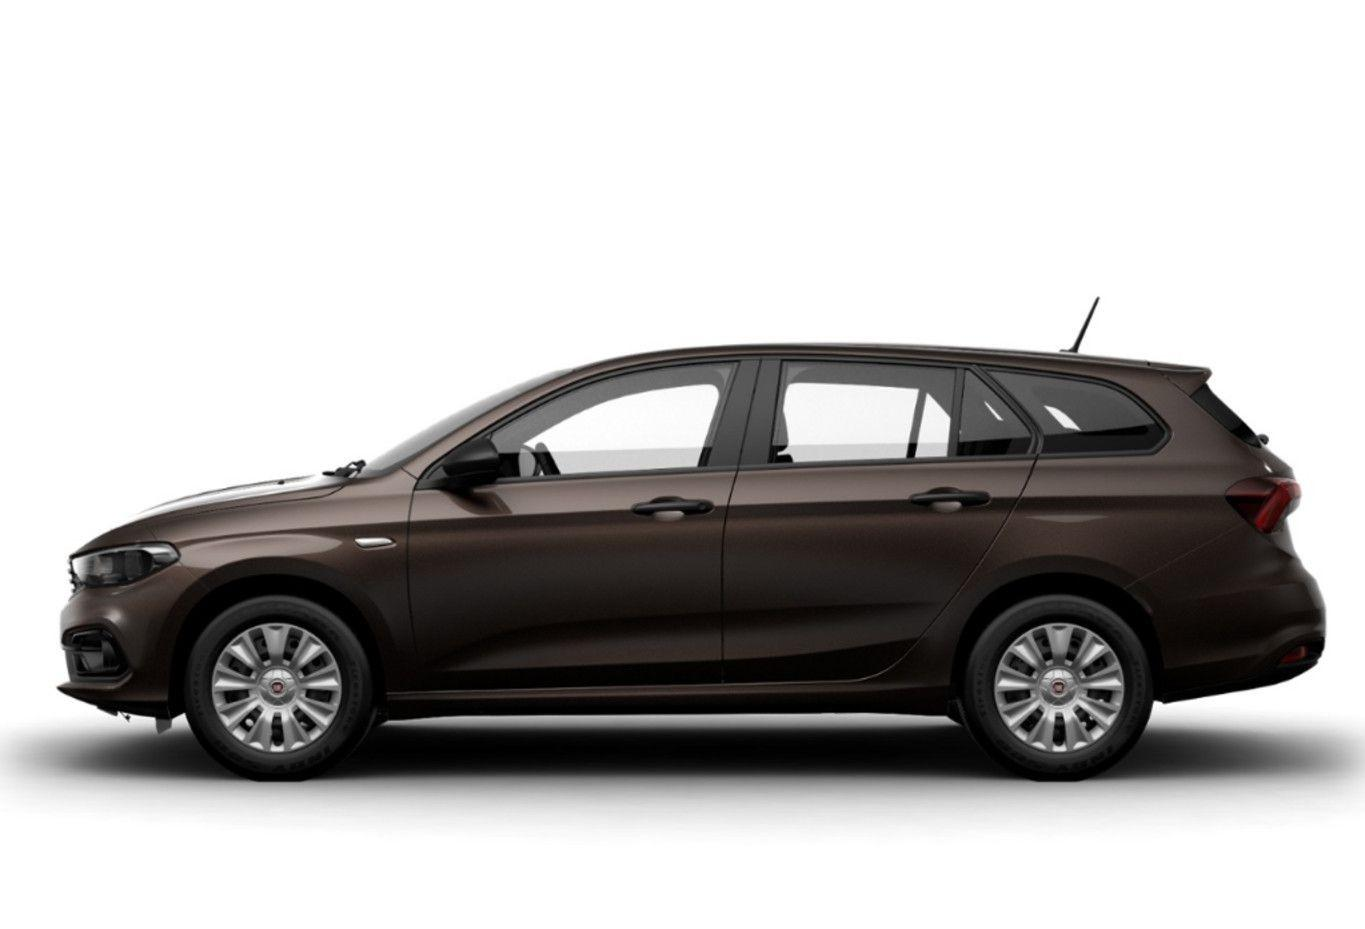 Fiat Tipo Kombi 1.0 T3 100 S&S UCon LaneAs DAB+ MFL - Leasing ohne Anzahlung - 403956_02